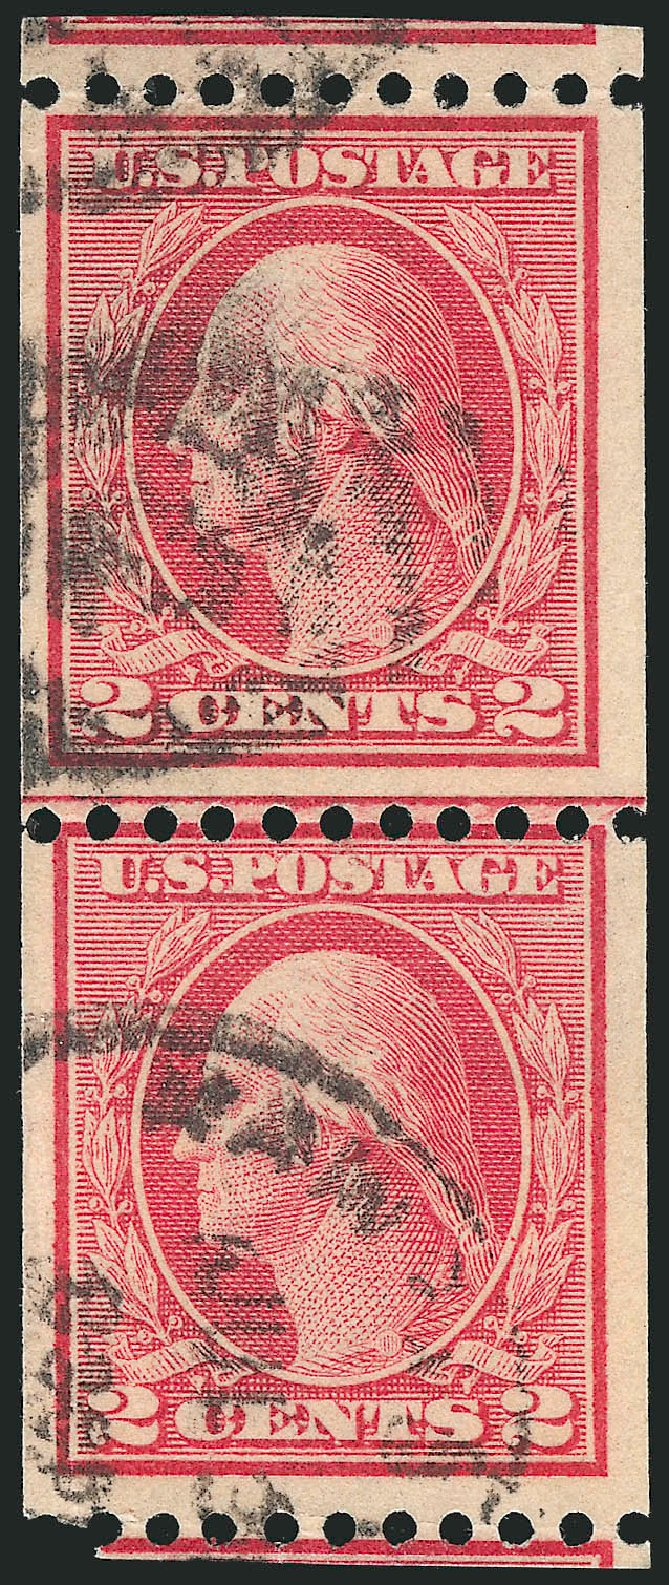 Prices of US Stamp Scott 449 - 2c 1915 Washington Coil Perf 10 Horizontally. Robert Siegel Auction Galleries, Feb 2015, Sale 1093, Lot 349